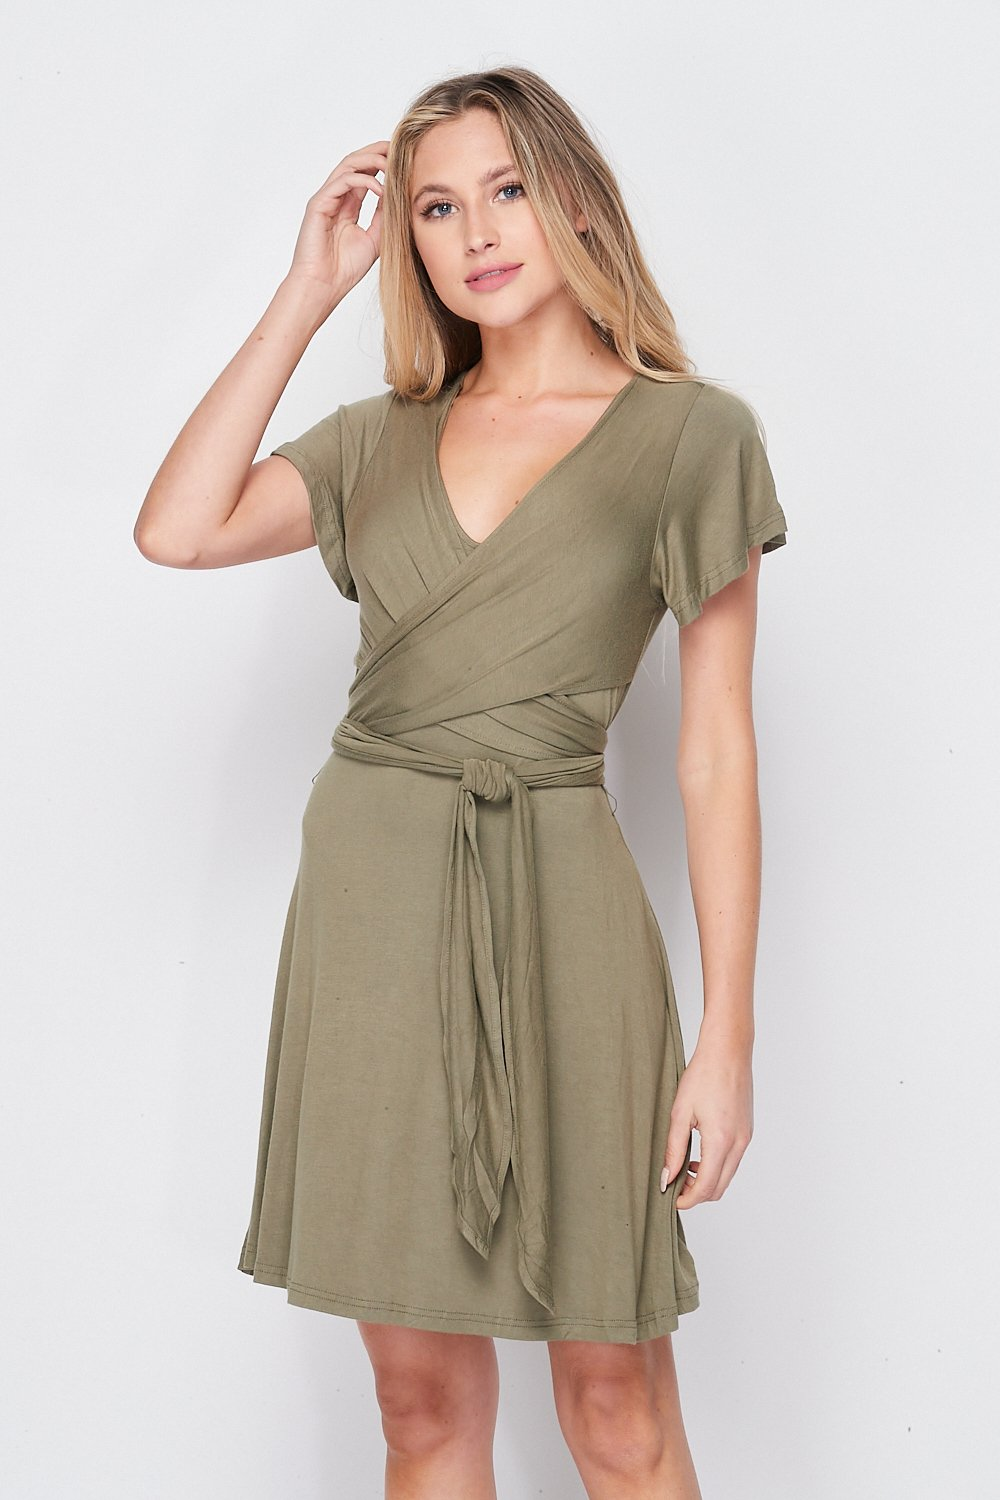 Blank Lewks | All Wrapped Up Tie Dress | Olive